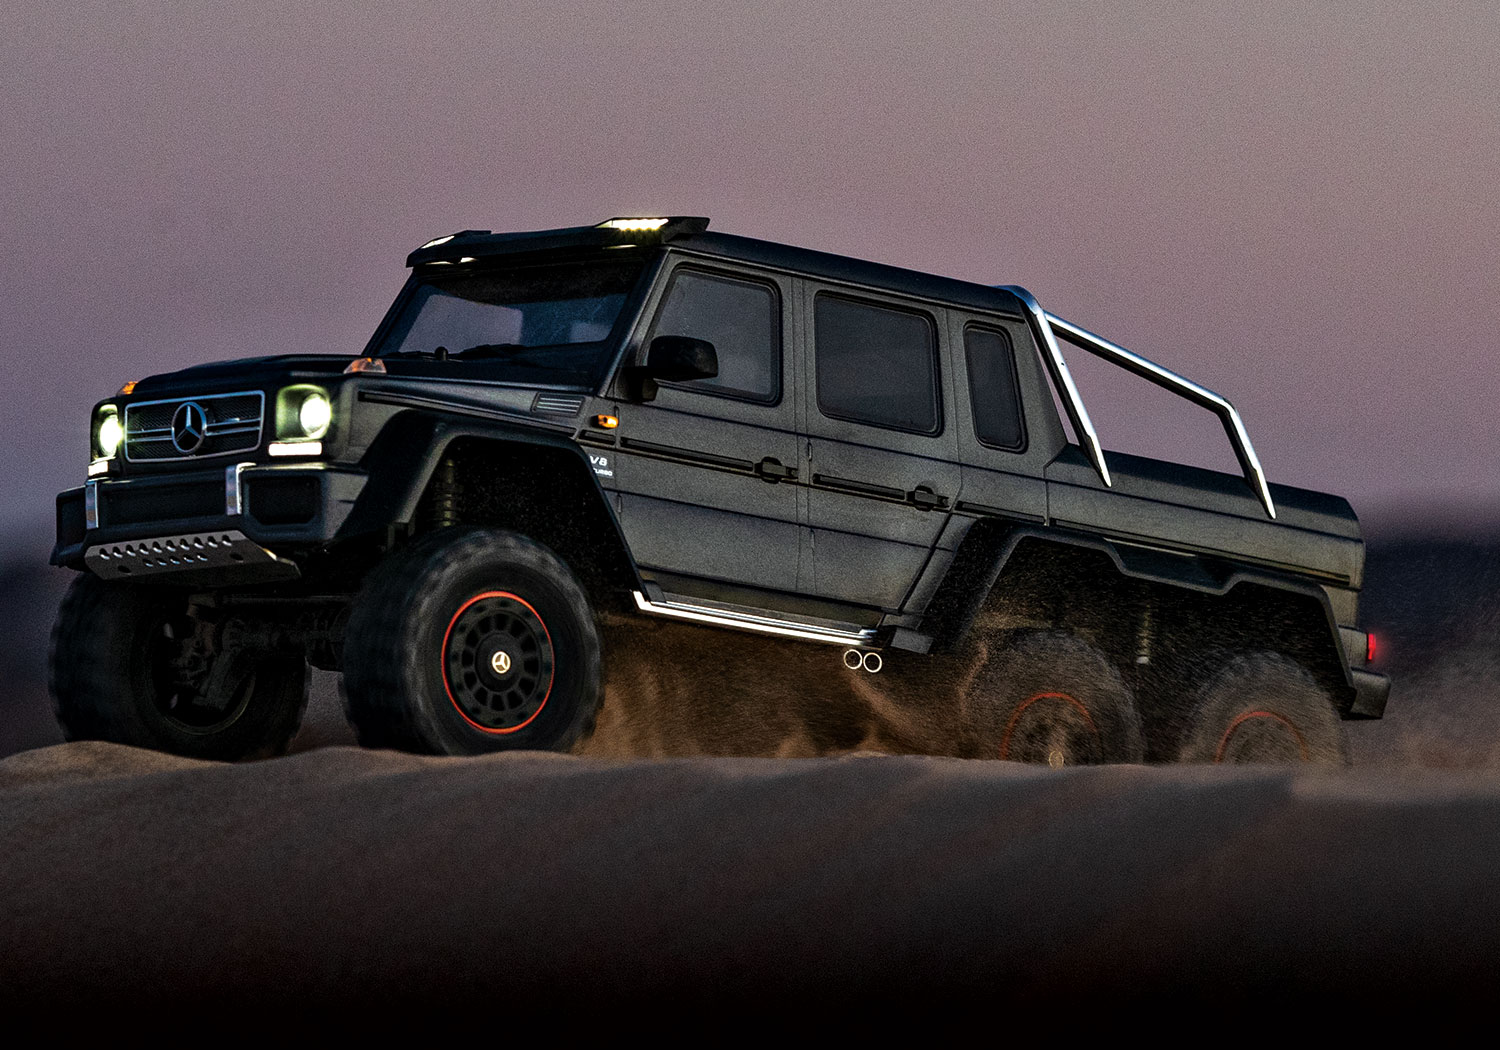 Traxxas TRX-4 with Mercedes-Benz G 63 AMG 6x6 Black